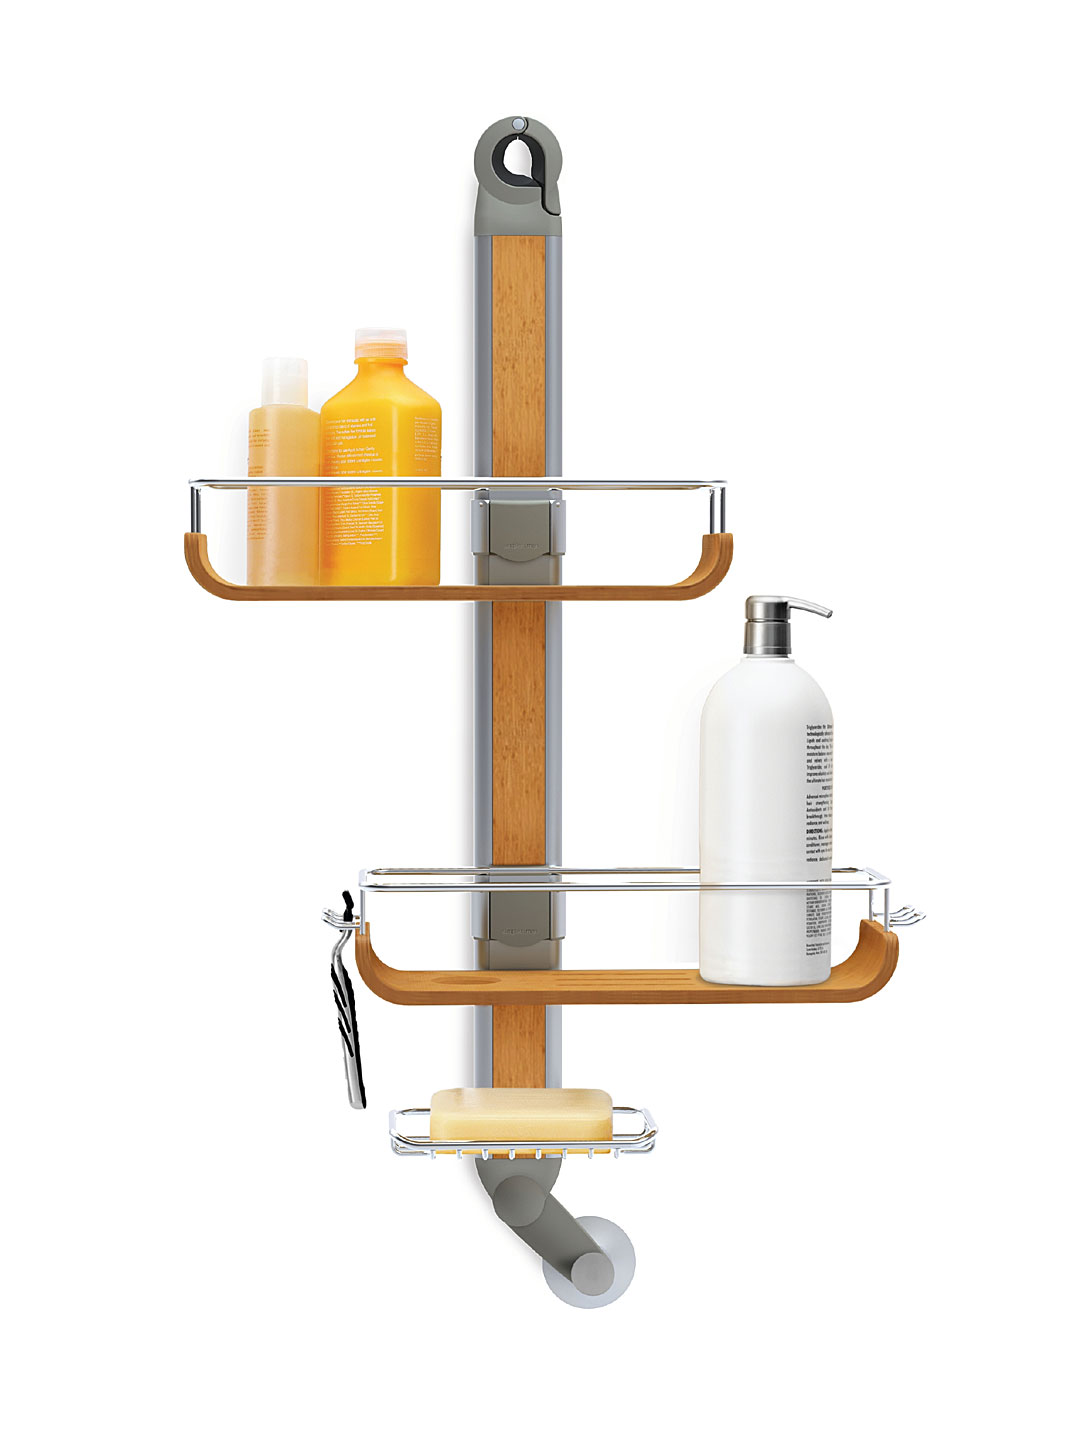 Simplehuman Tension Pole Shower Caddy | Simplehuman Shower Caddy | Simplehuman Shower Caddy